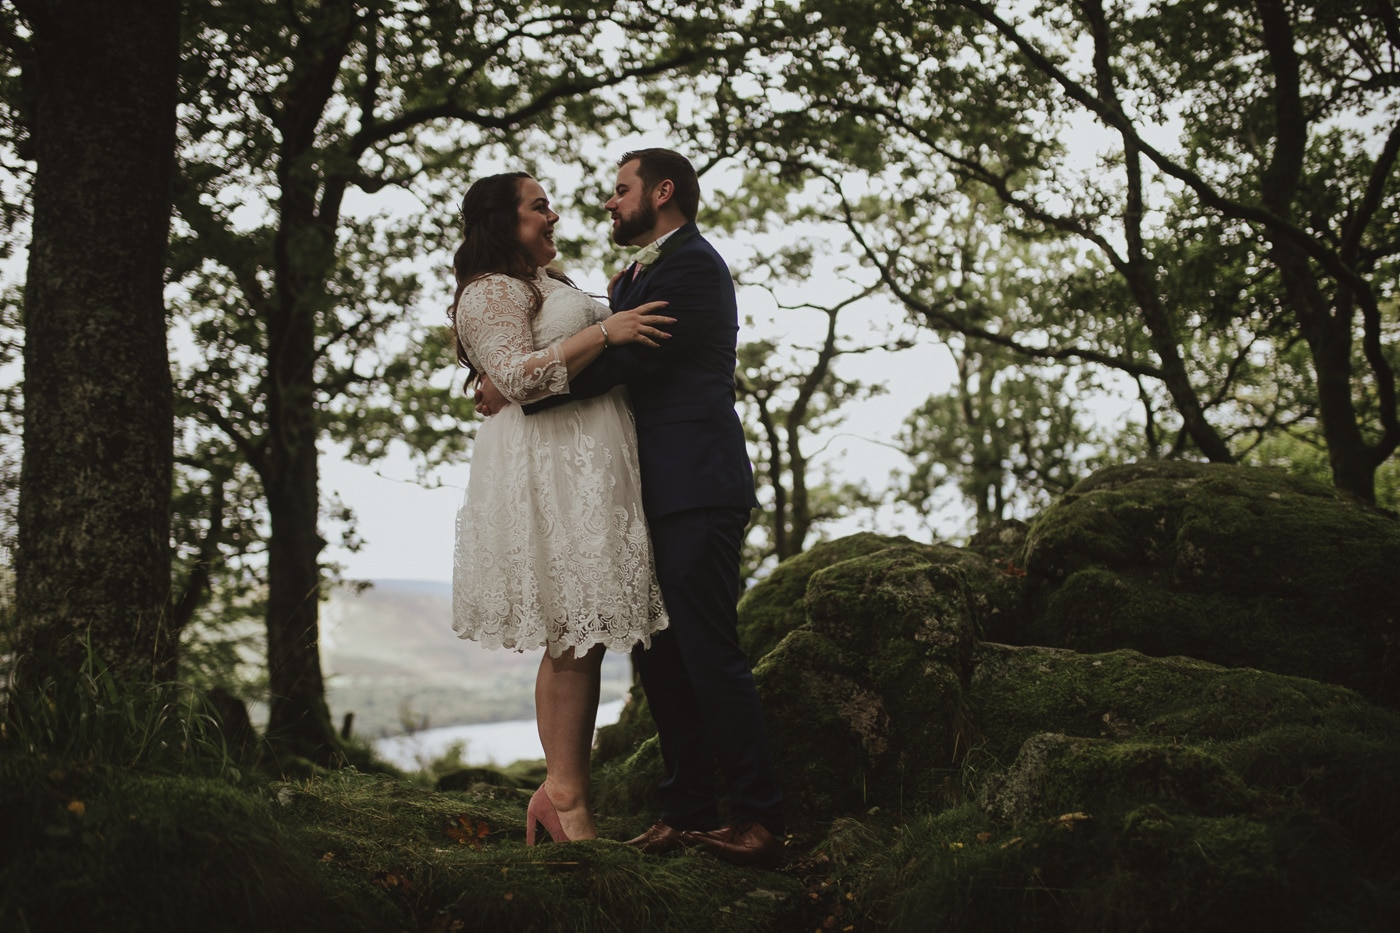 Bride and groom embracing in the forest in the lake district